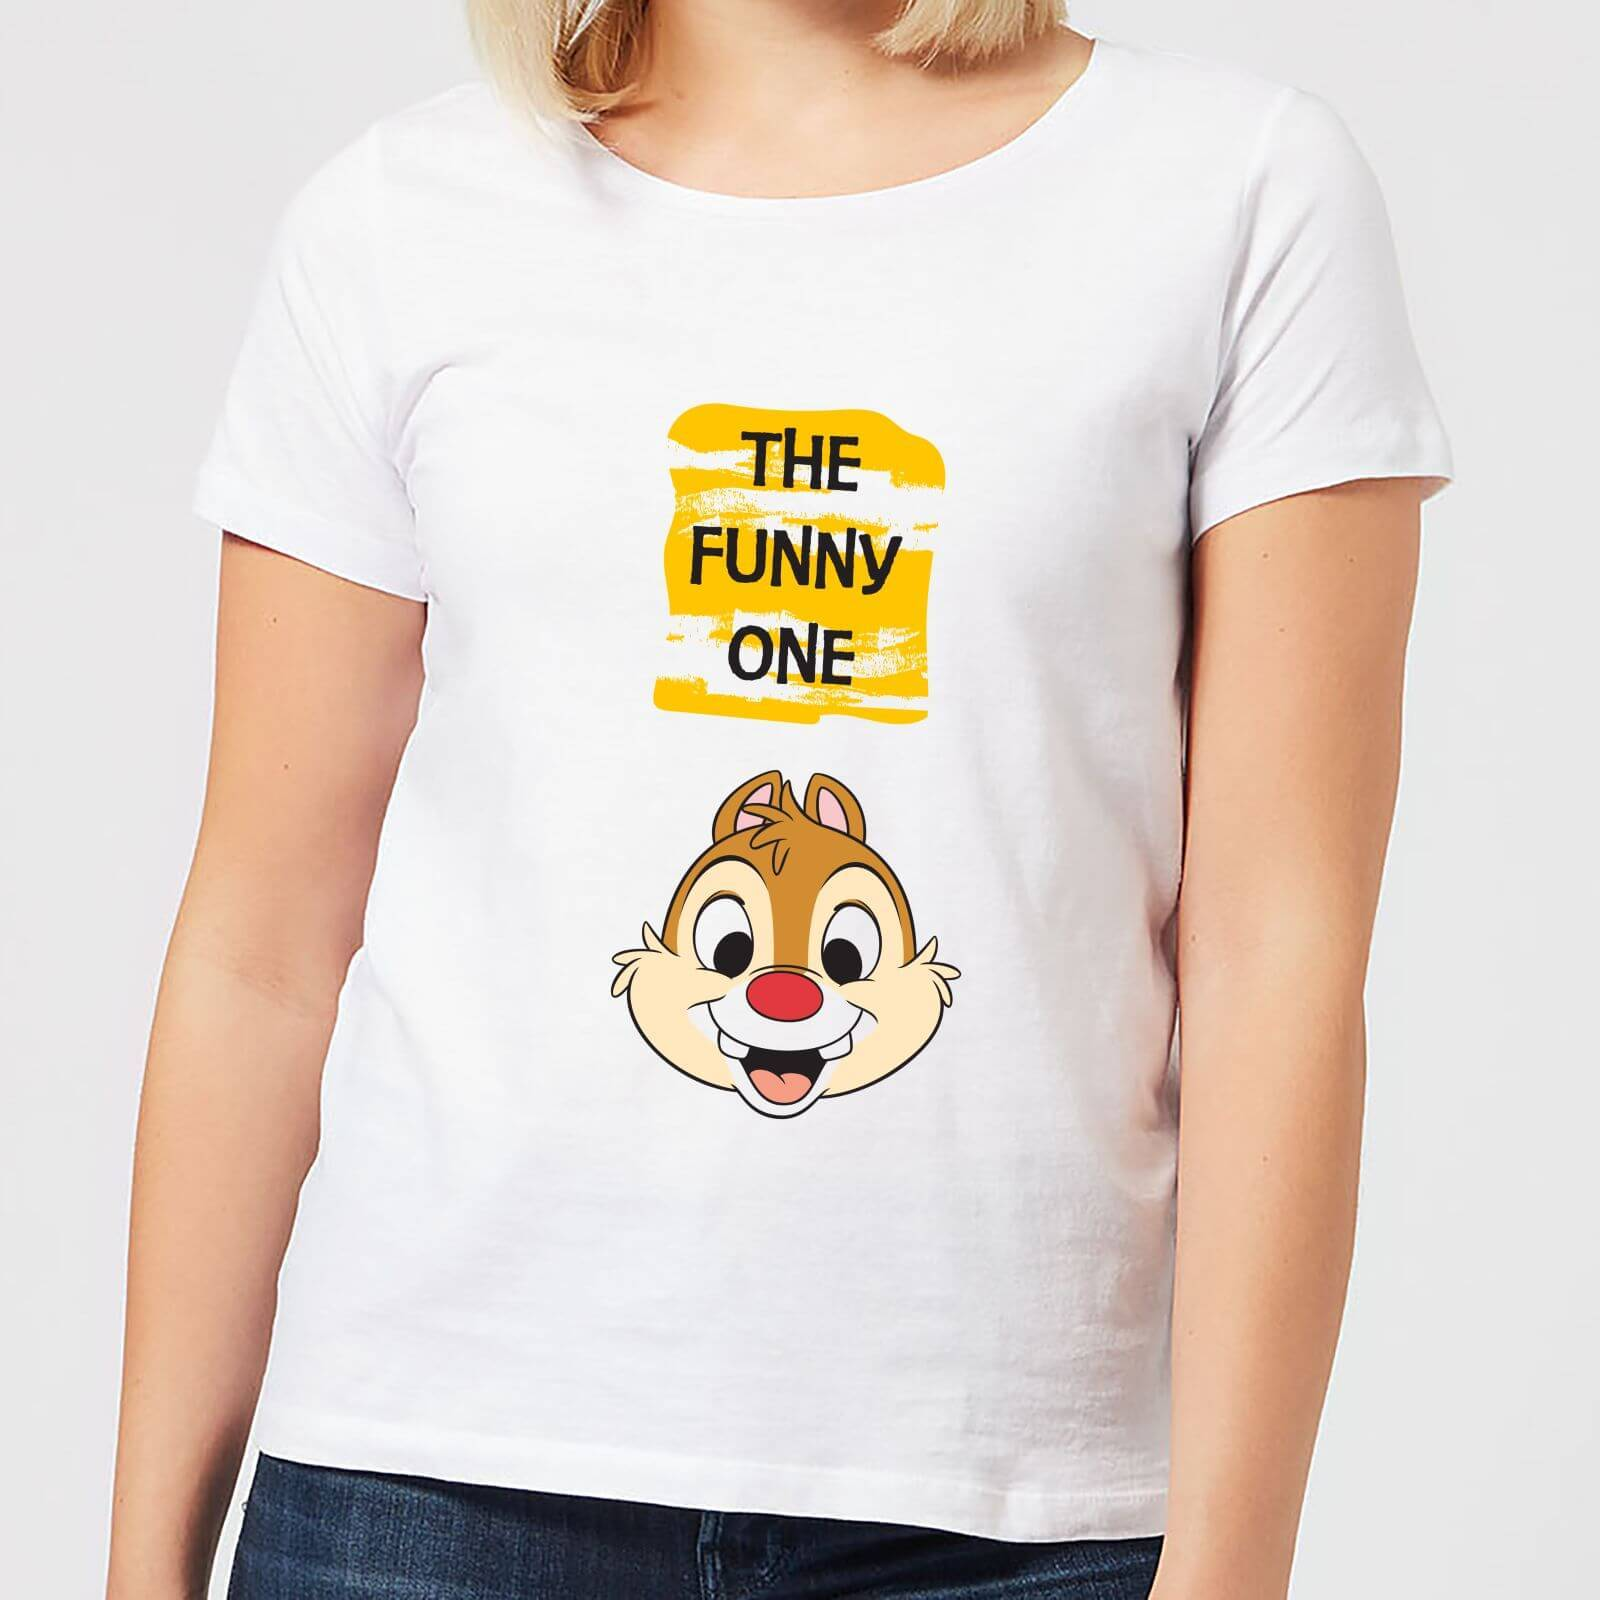 Disney Chip 'N' Dale The Funny One Women's T-Shirt - White - S - White